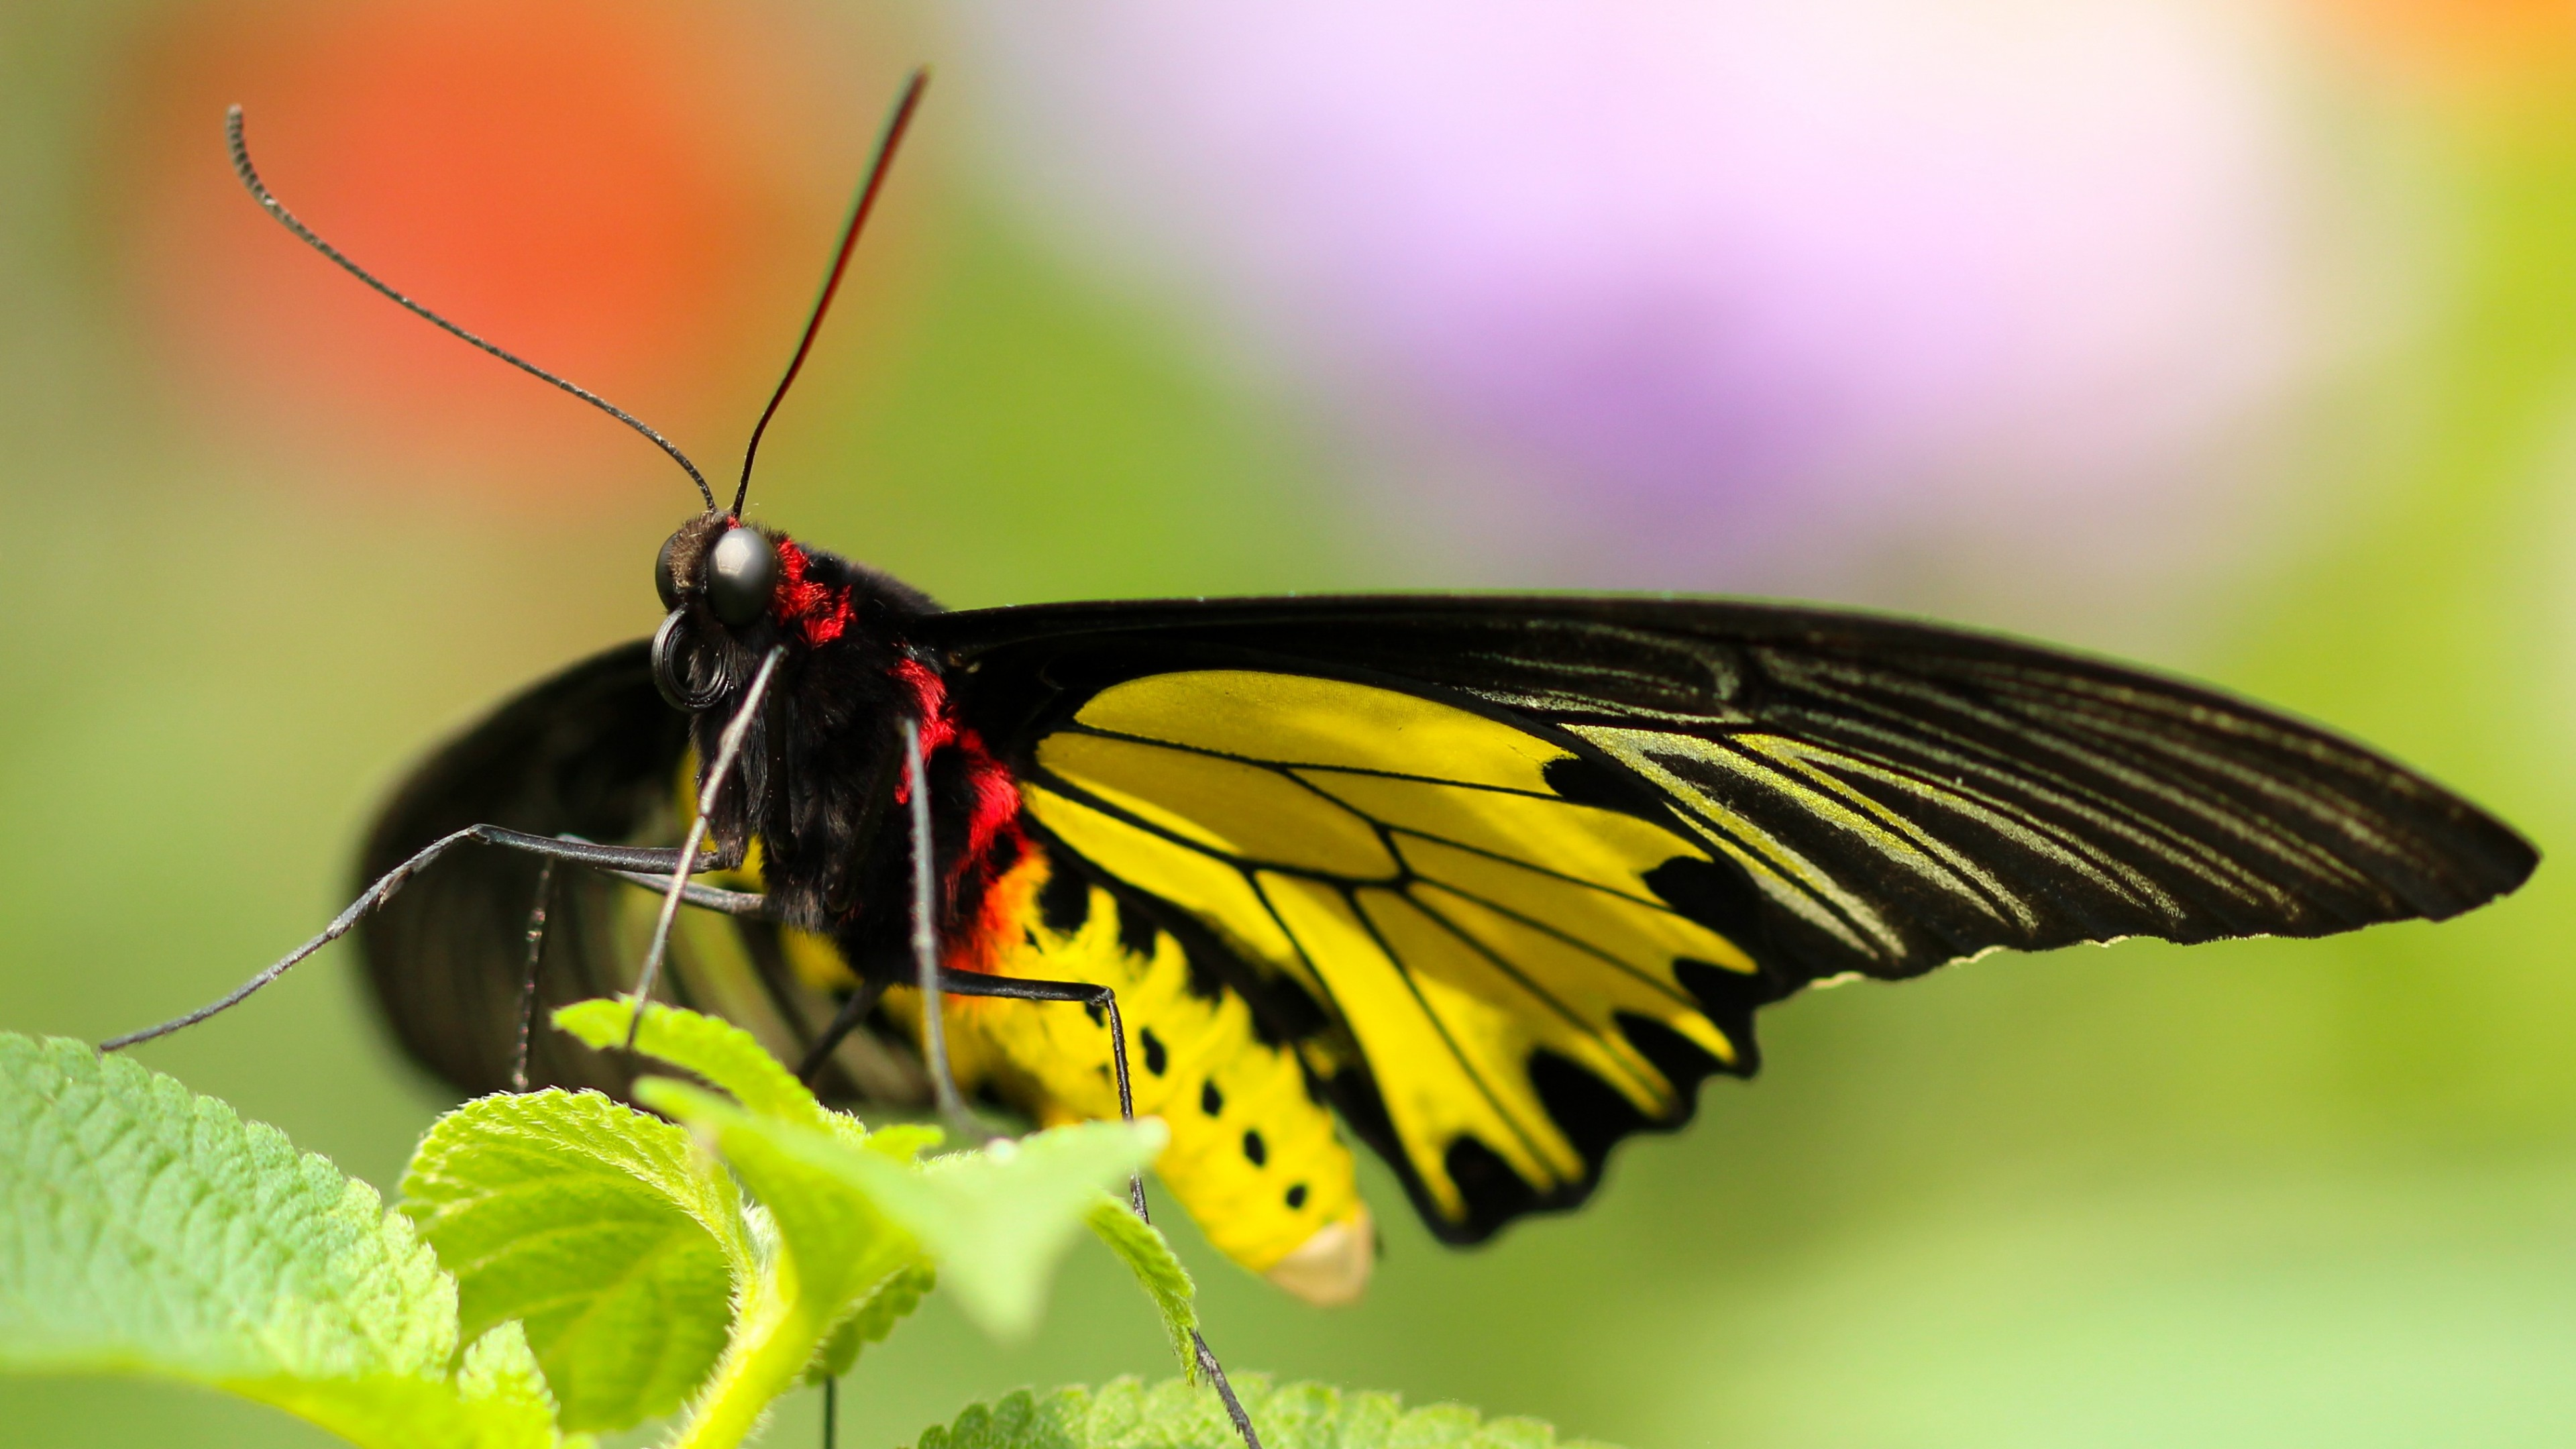 … Background 4K Ultra HD. Wallpaper butterfly, colorful,  close-up